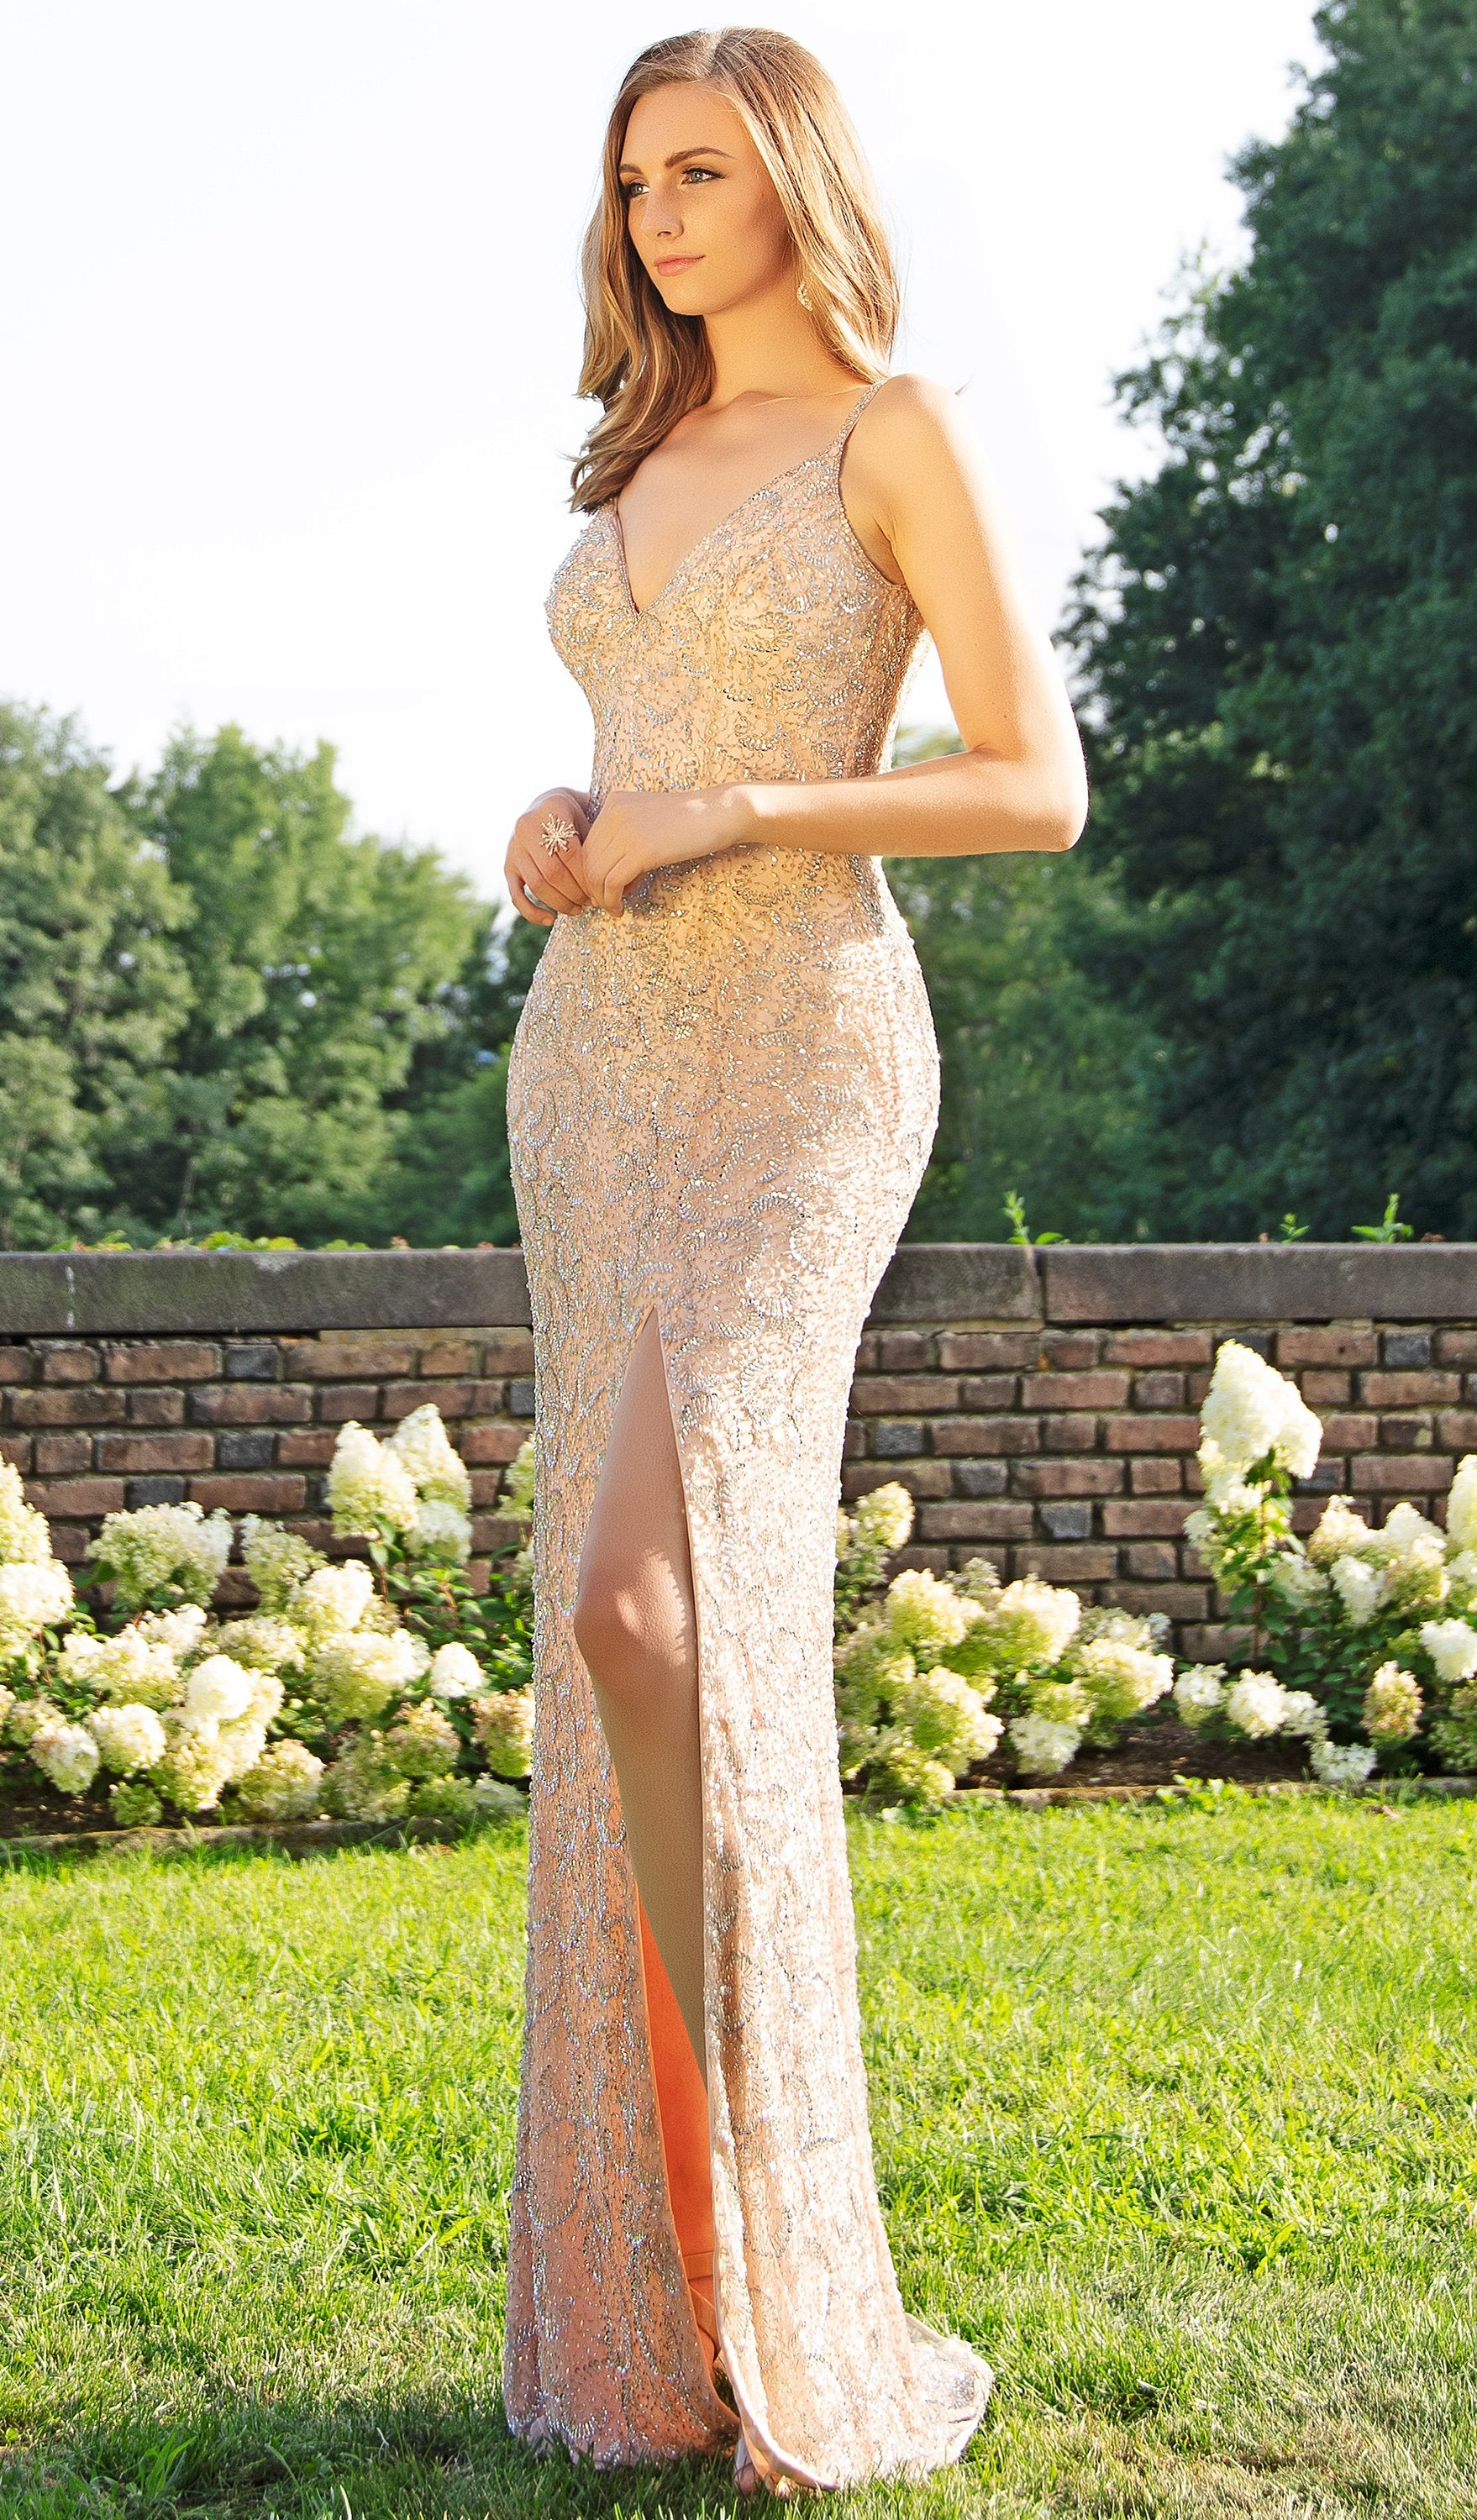 Primavera Couture - 3209 Sequined Embellished Plunging V Neck Gown In Pink and Silver